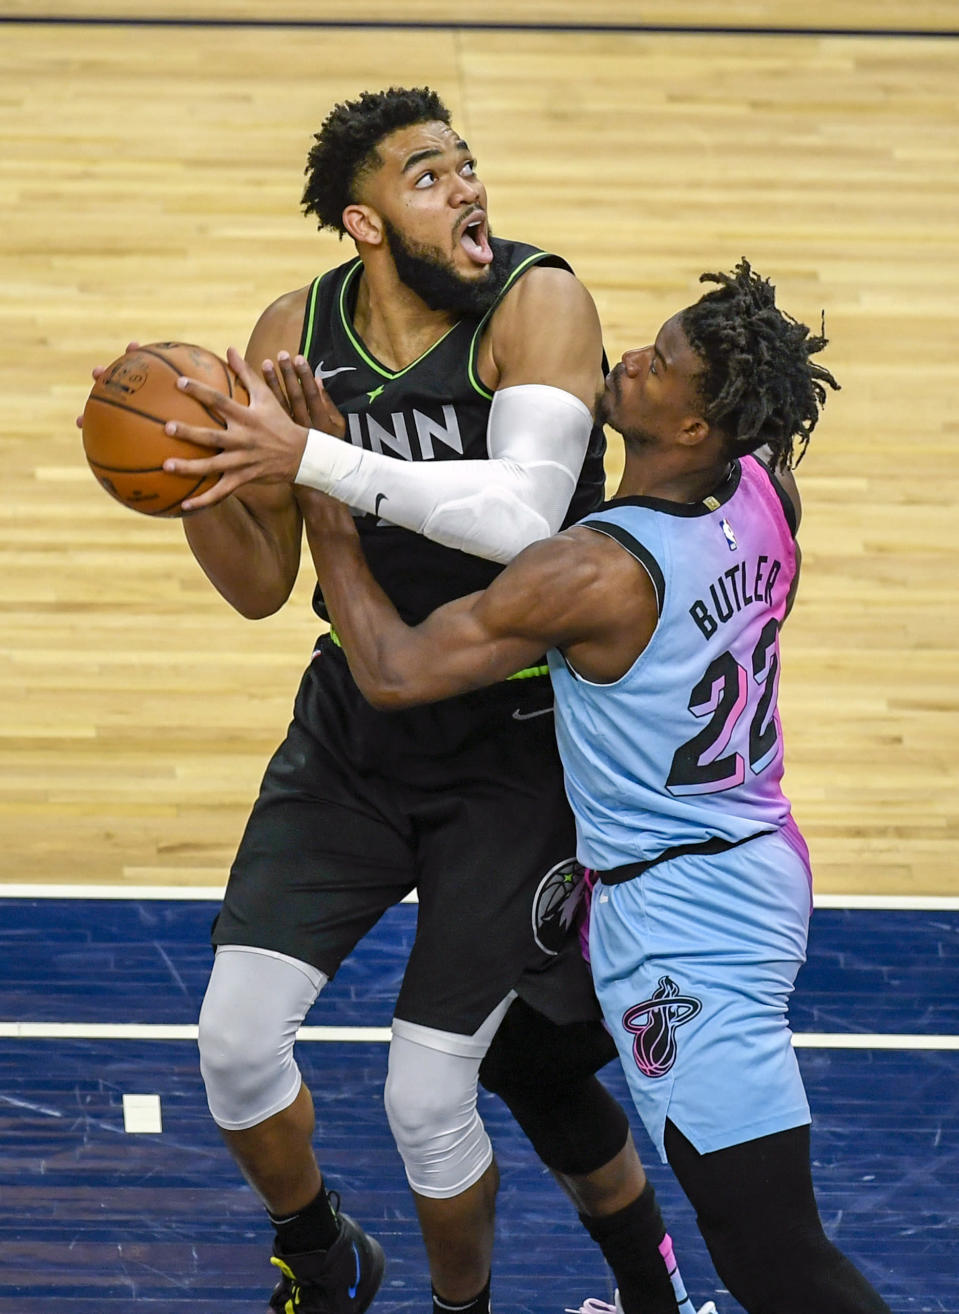 Minnesota Timberwolves center Karl-Anthony Towns, left, is fouled by Miami Heat forward Jimmy Butlerduring the second half of an NBA basketball game Friday, April 16, 2021, in Minneapolis. The Timberwolves won 119-111. (AP Photo/Craig Lassig)